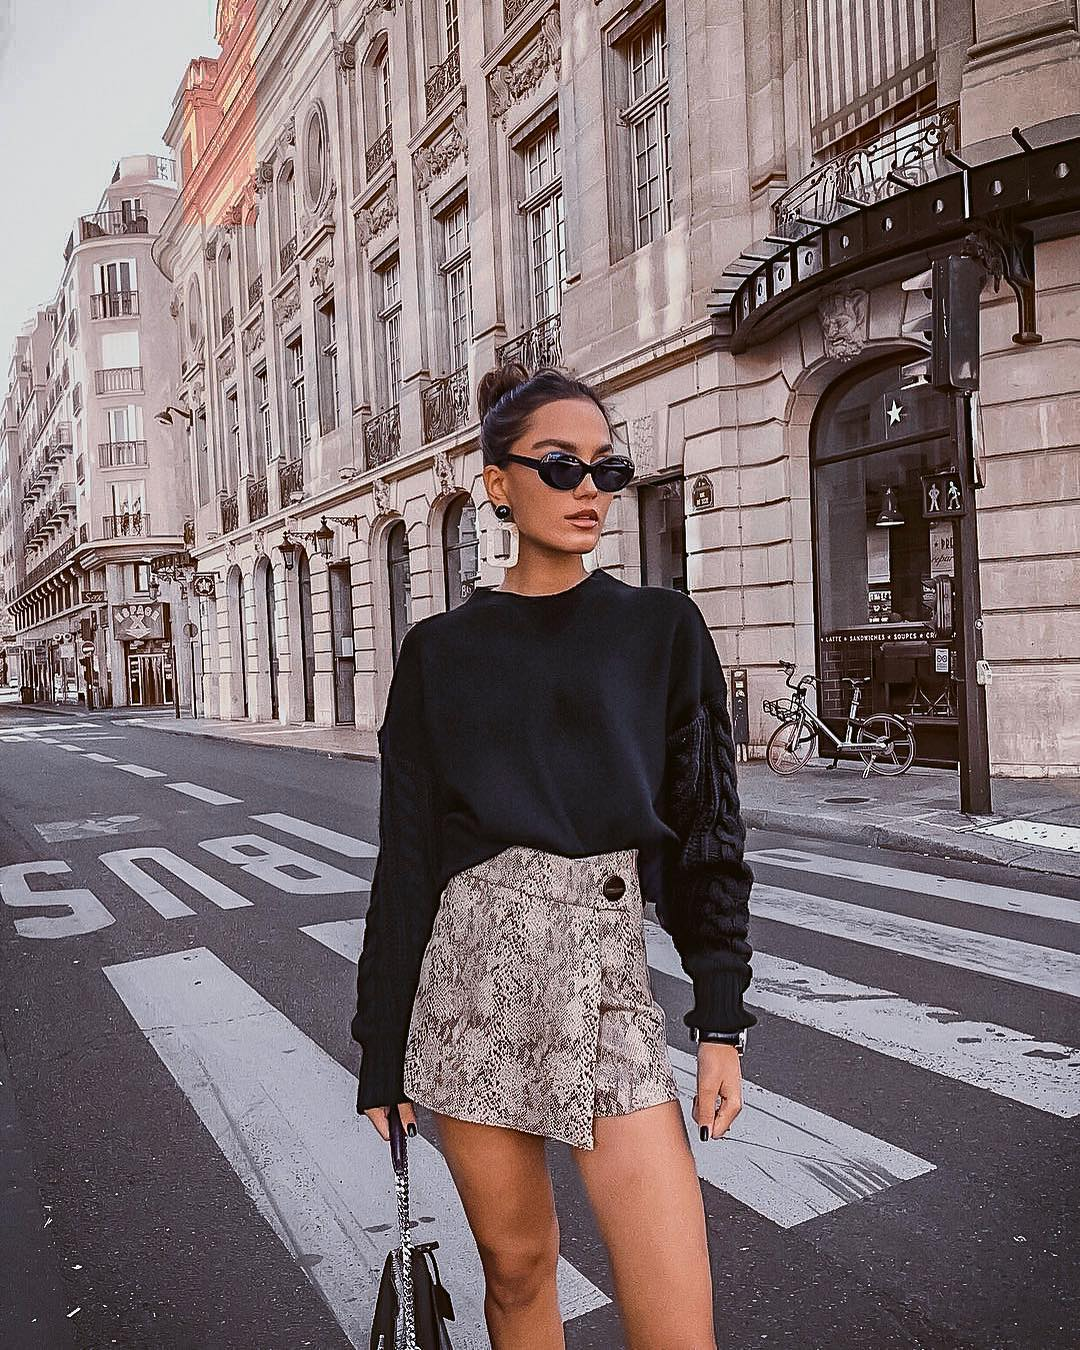 Bulky sweater in black and wrap-around mini skirt for fall 2021